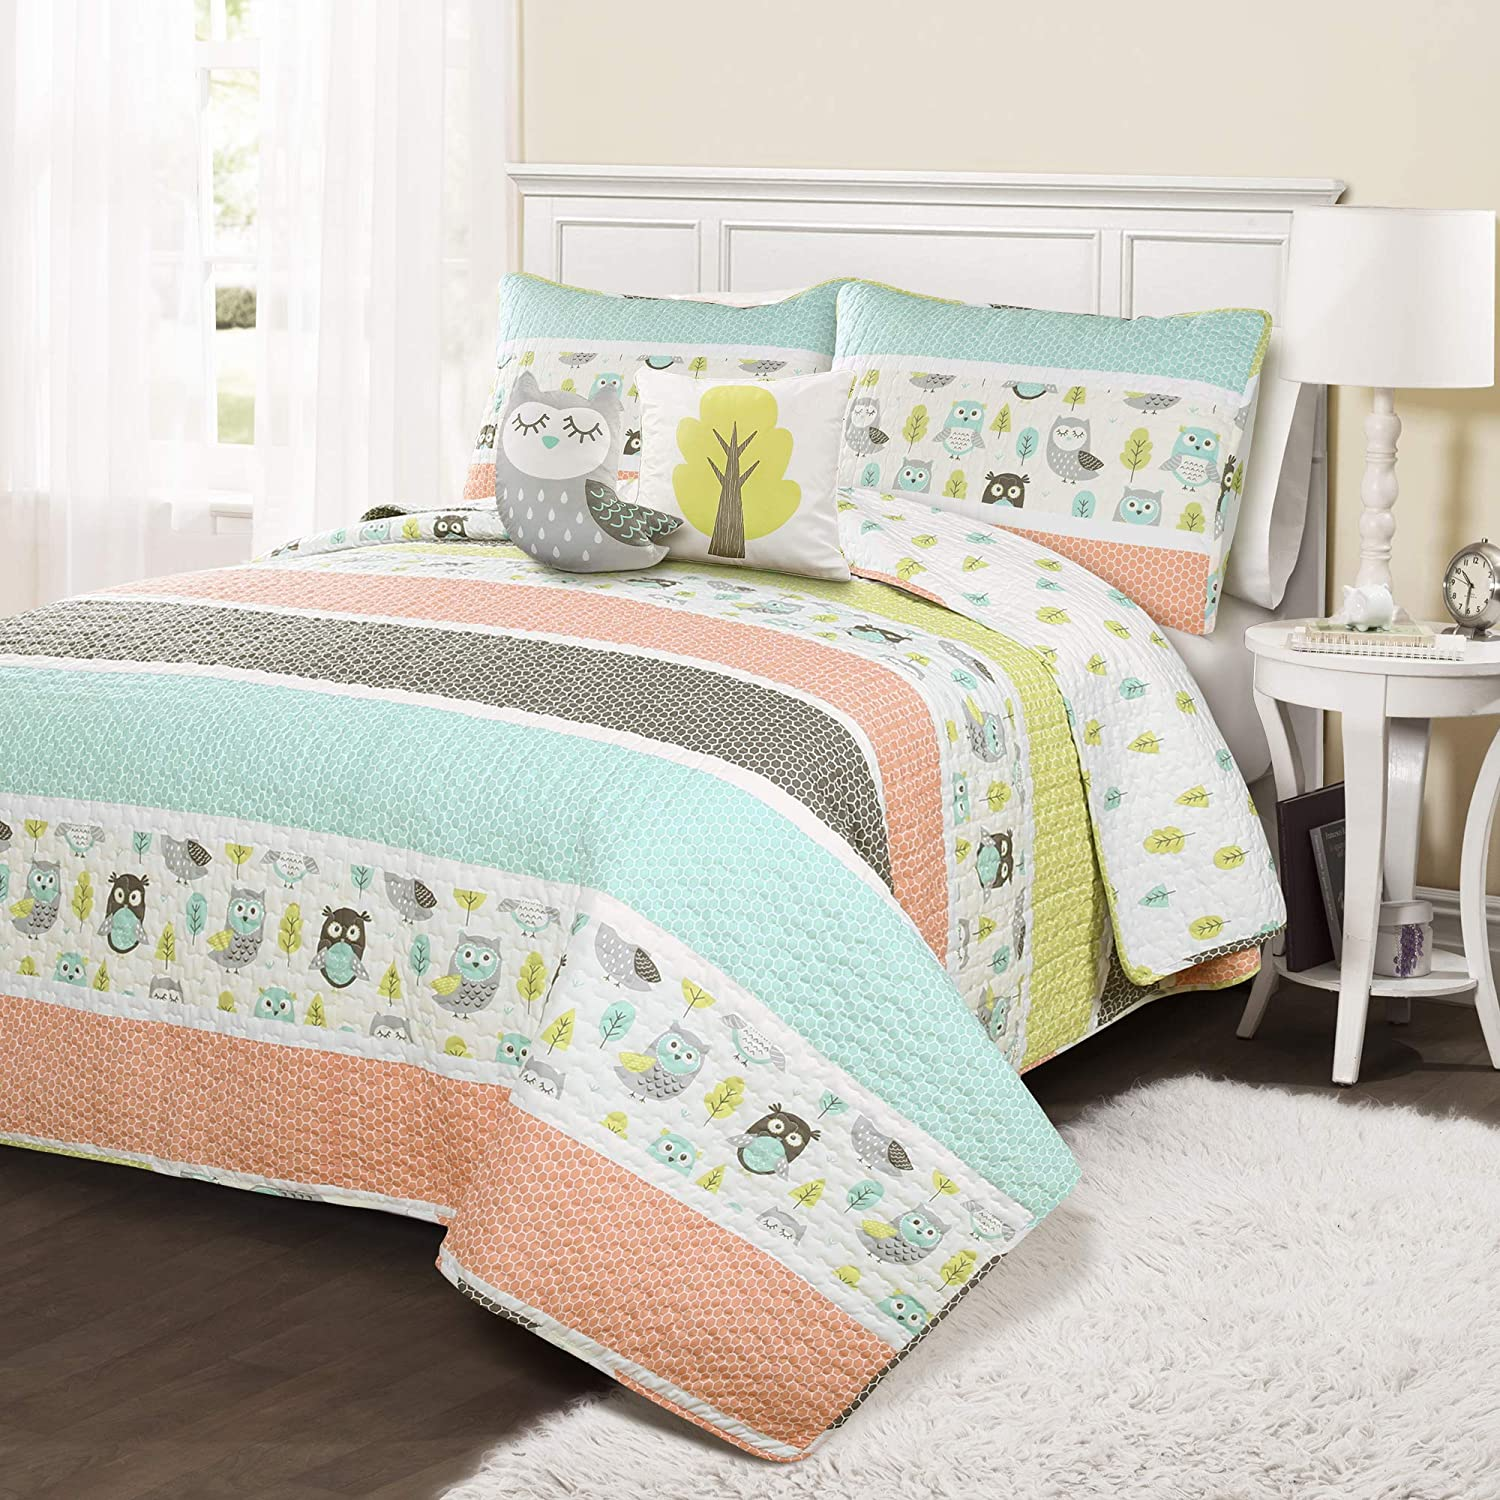 Lush Decor Owl Stripe 5 Piece Quilt Set, Full/Queen, Coral & Turquoise